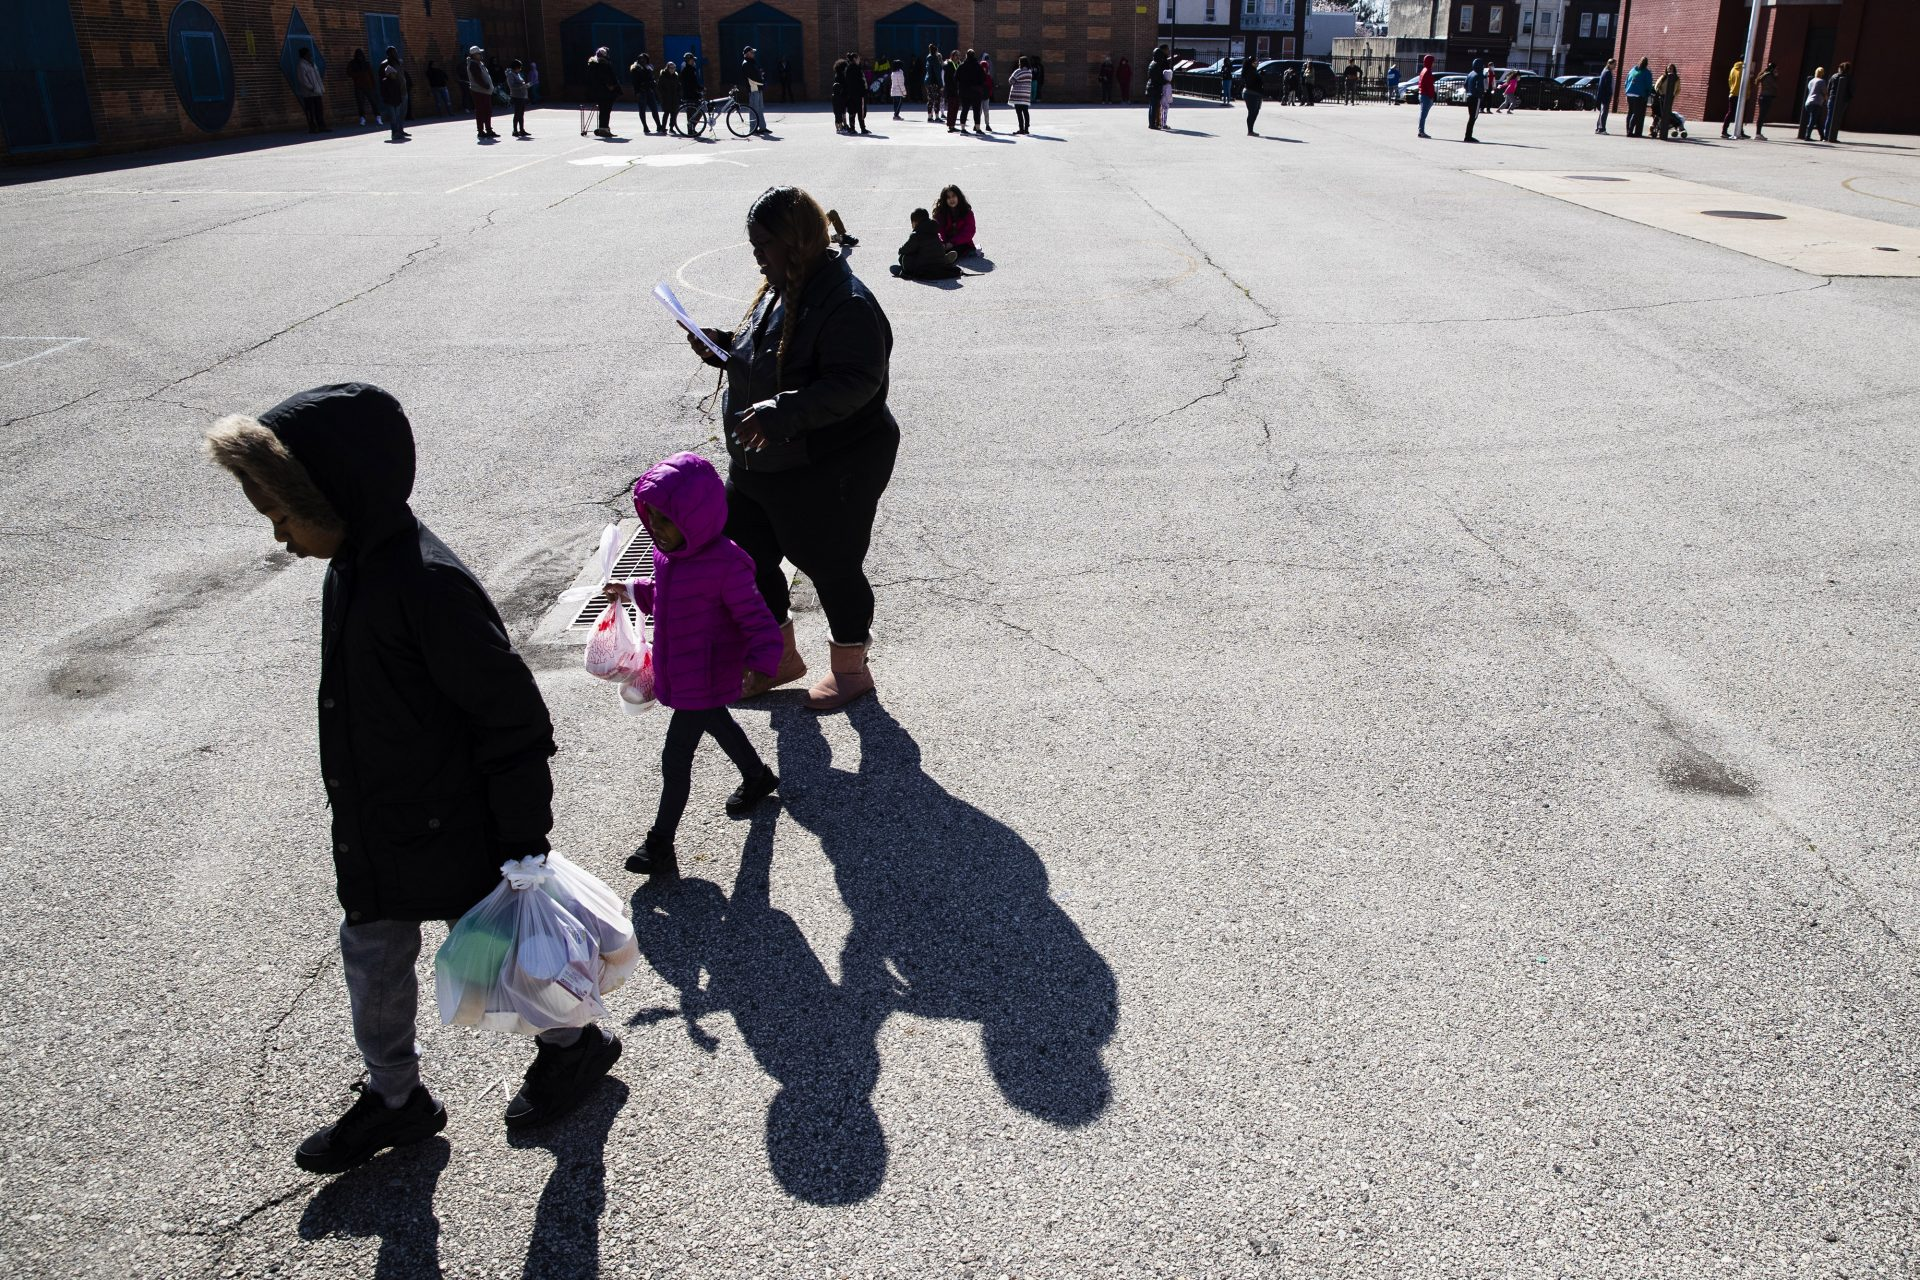 A woman and children walk away from the John H. Webster Elementary School carrying donated food and educational materials, in Philadelphia, Thursday, March 26, 2020.